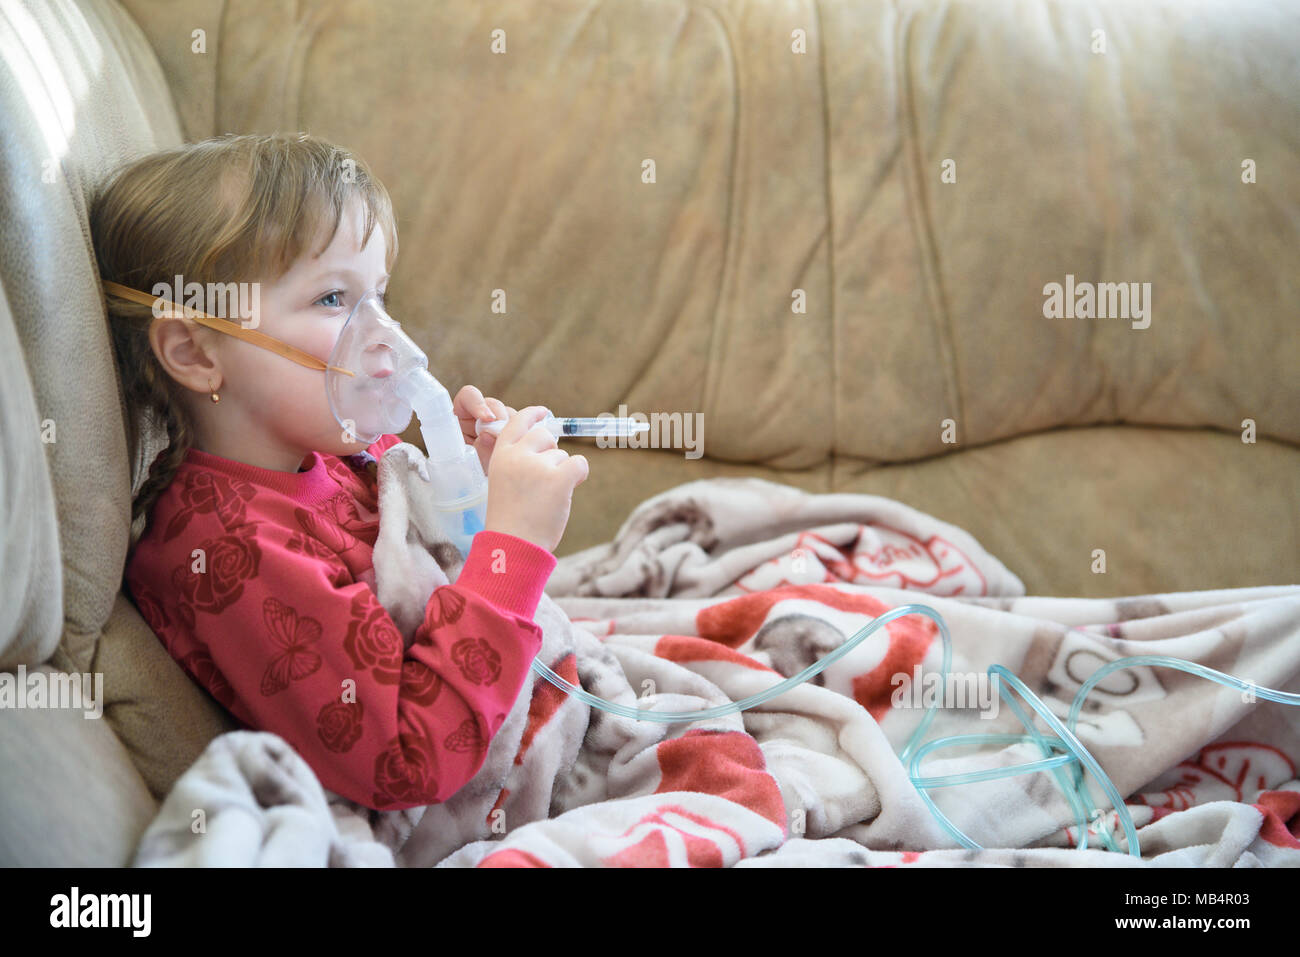 Little girl in a mask, cough treatment using a nebulizer at home - Stock Image